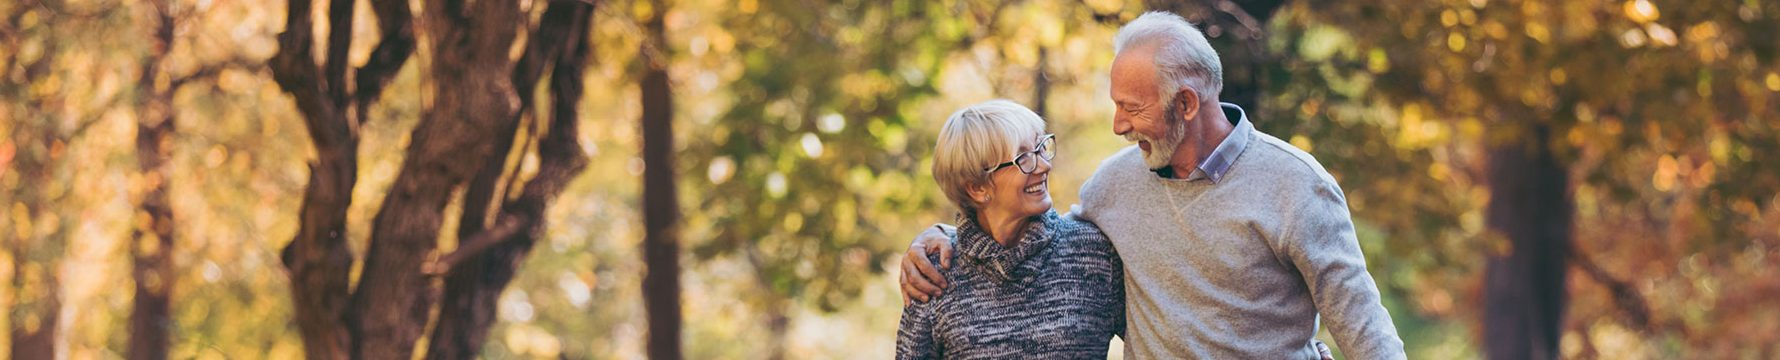 An elderly couple with their arms around one another walking on a trail in a park